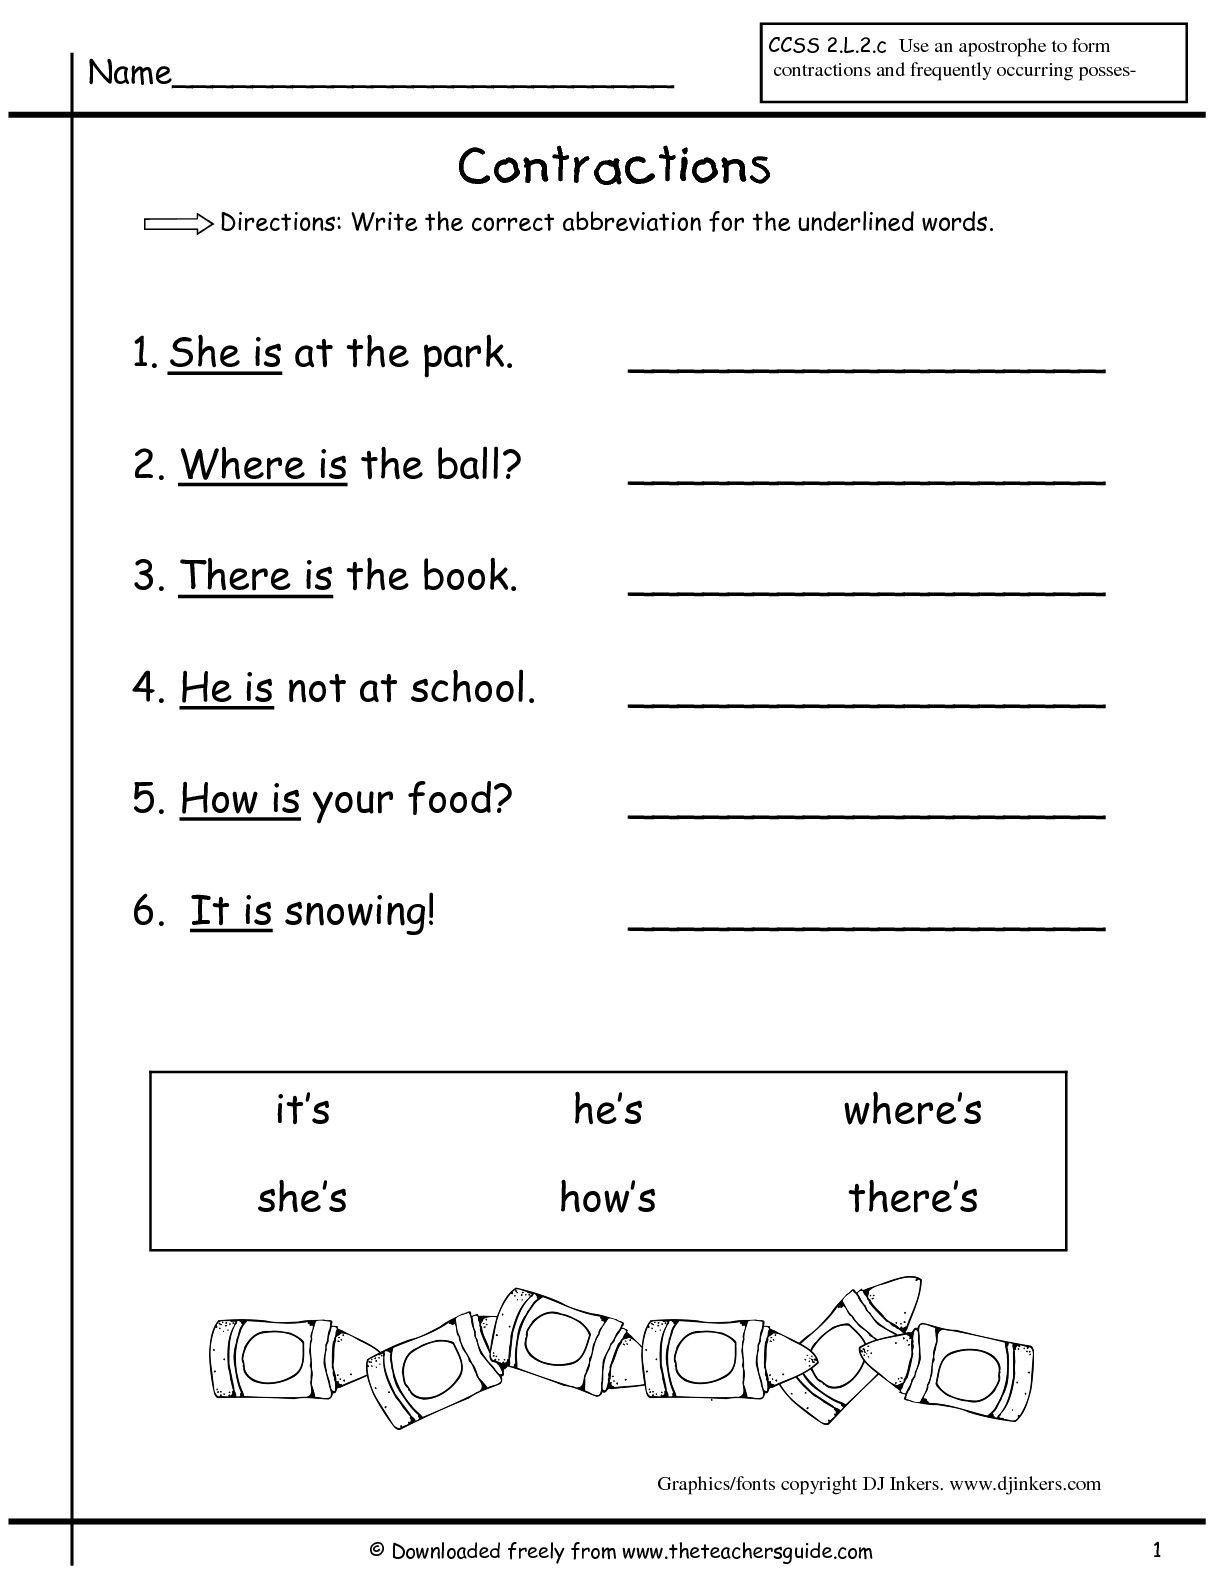 Operations with Functions Worksheet Math Basketball Math Play Maximum Destruction Coloring Pages